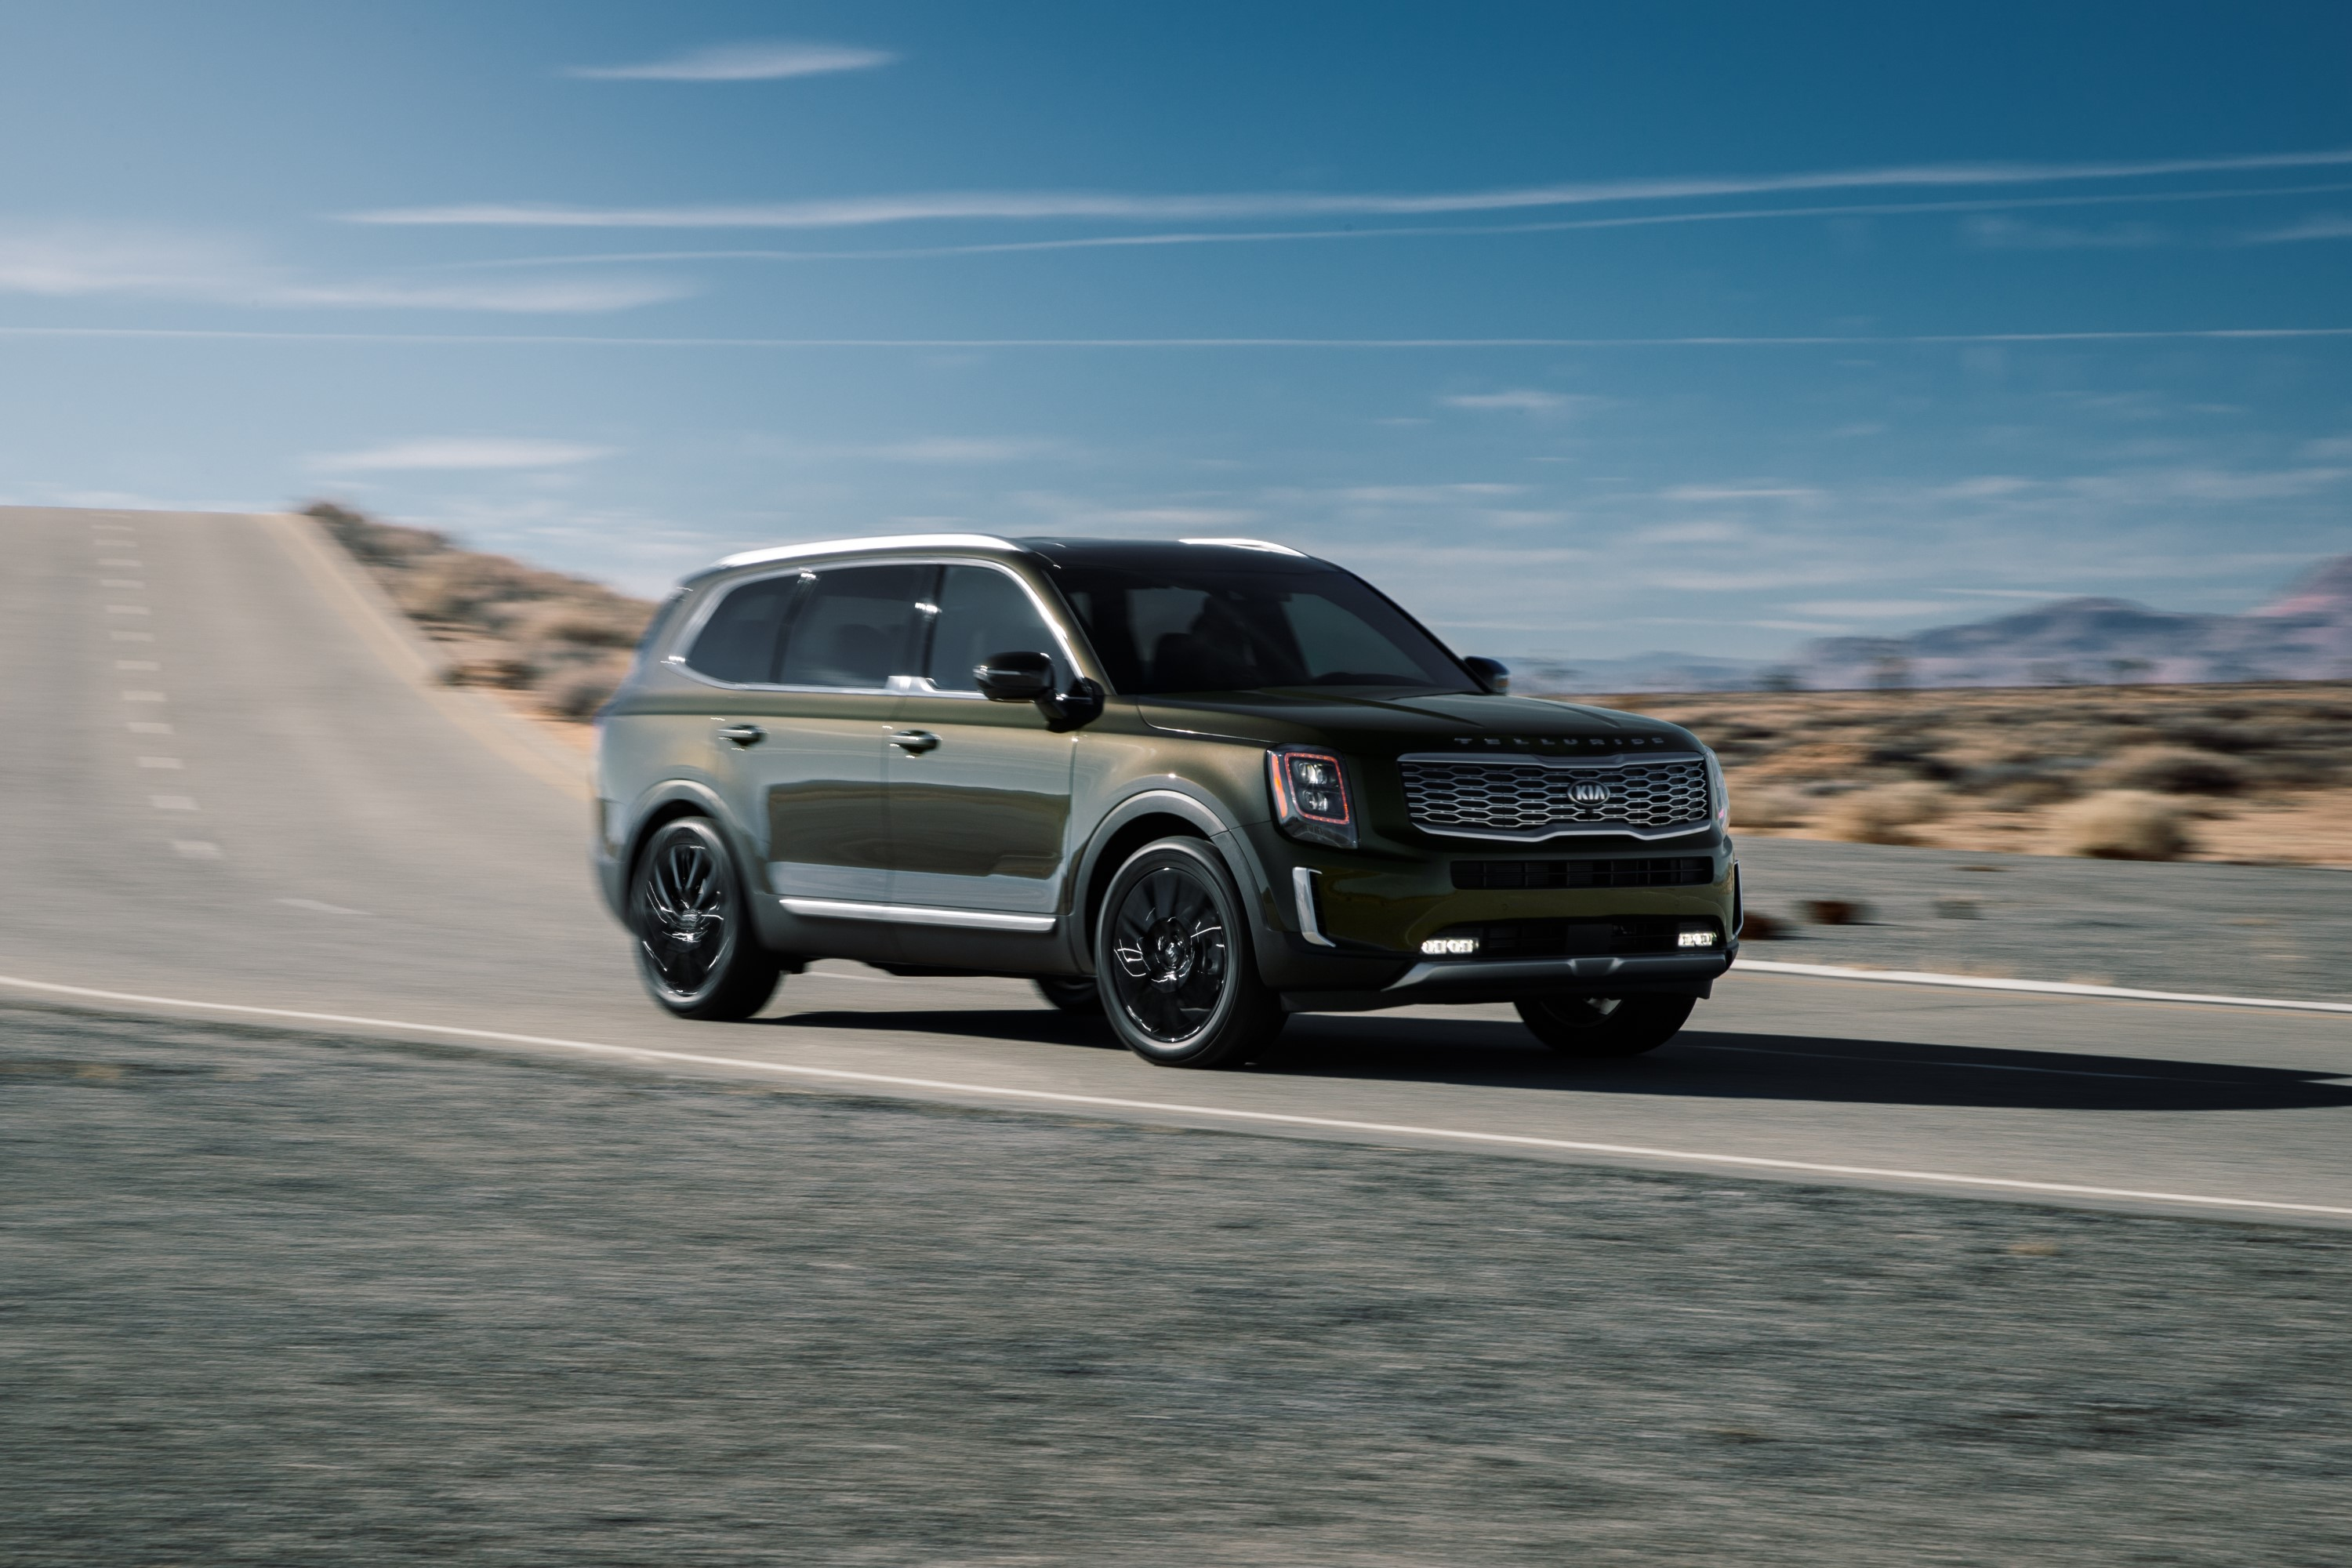 We promise our review of the Telluride is coming, but it has already won 2020's World Car of the Year Award.